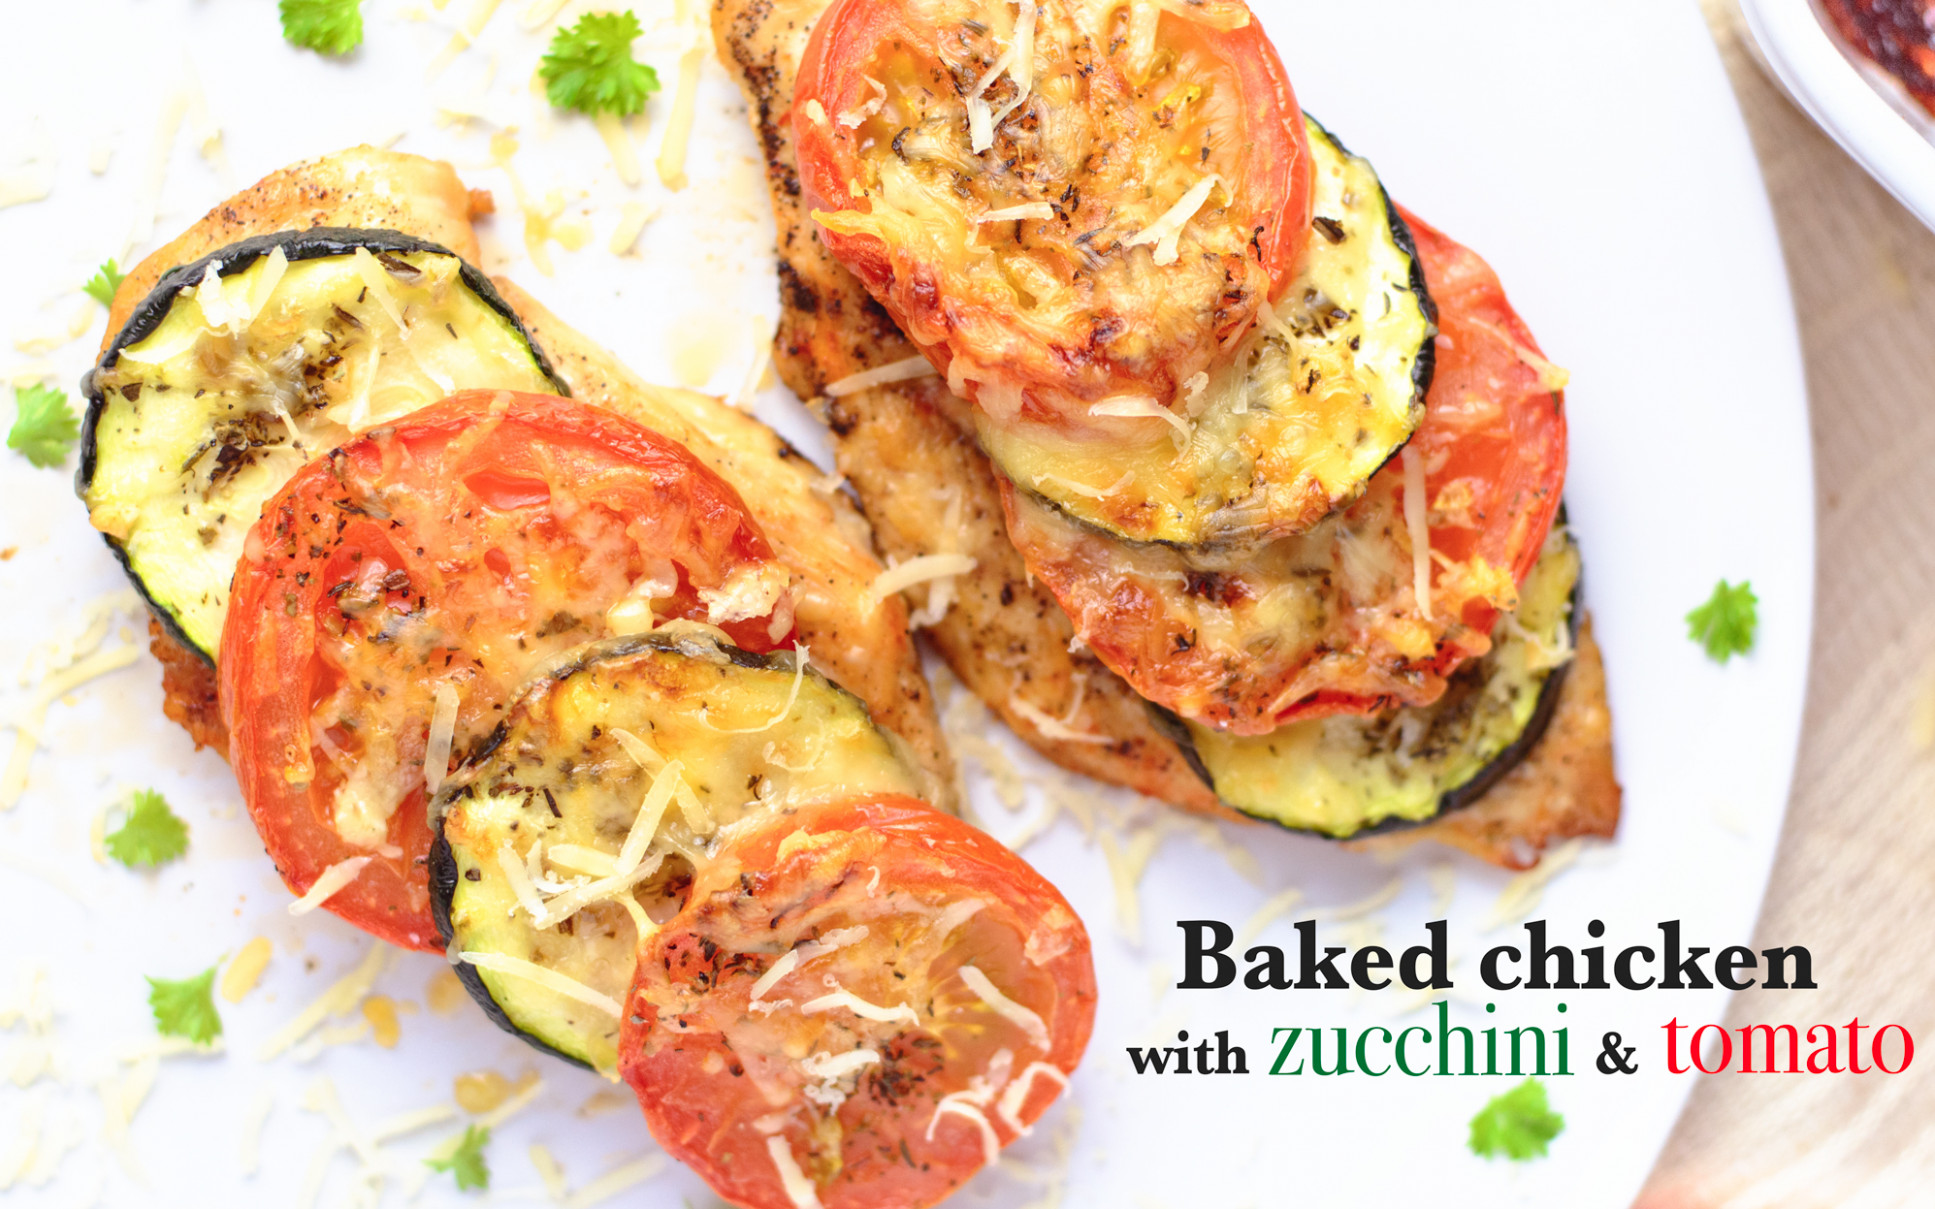 Baked chicken breast with zucchini and tomato - baked chicken and zucchini recipes easy